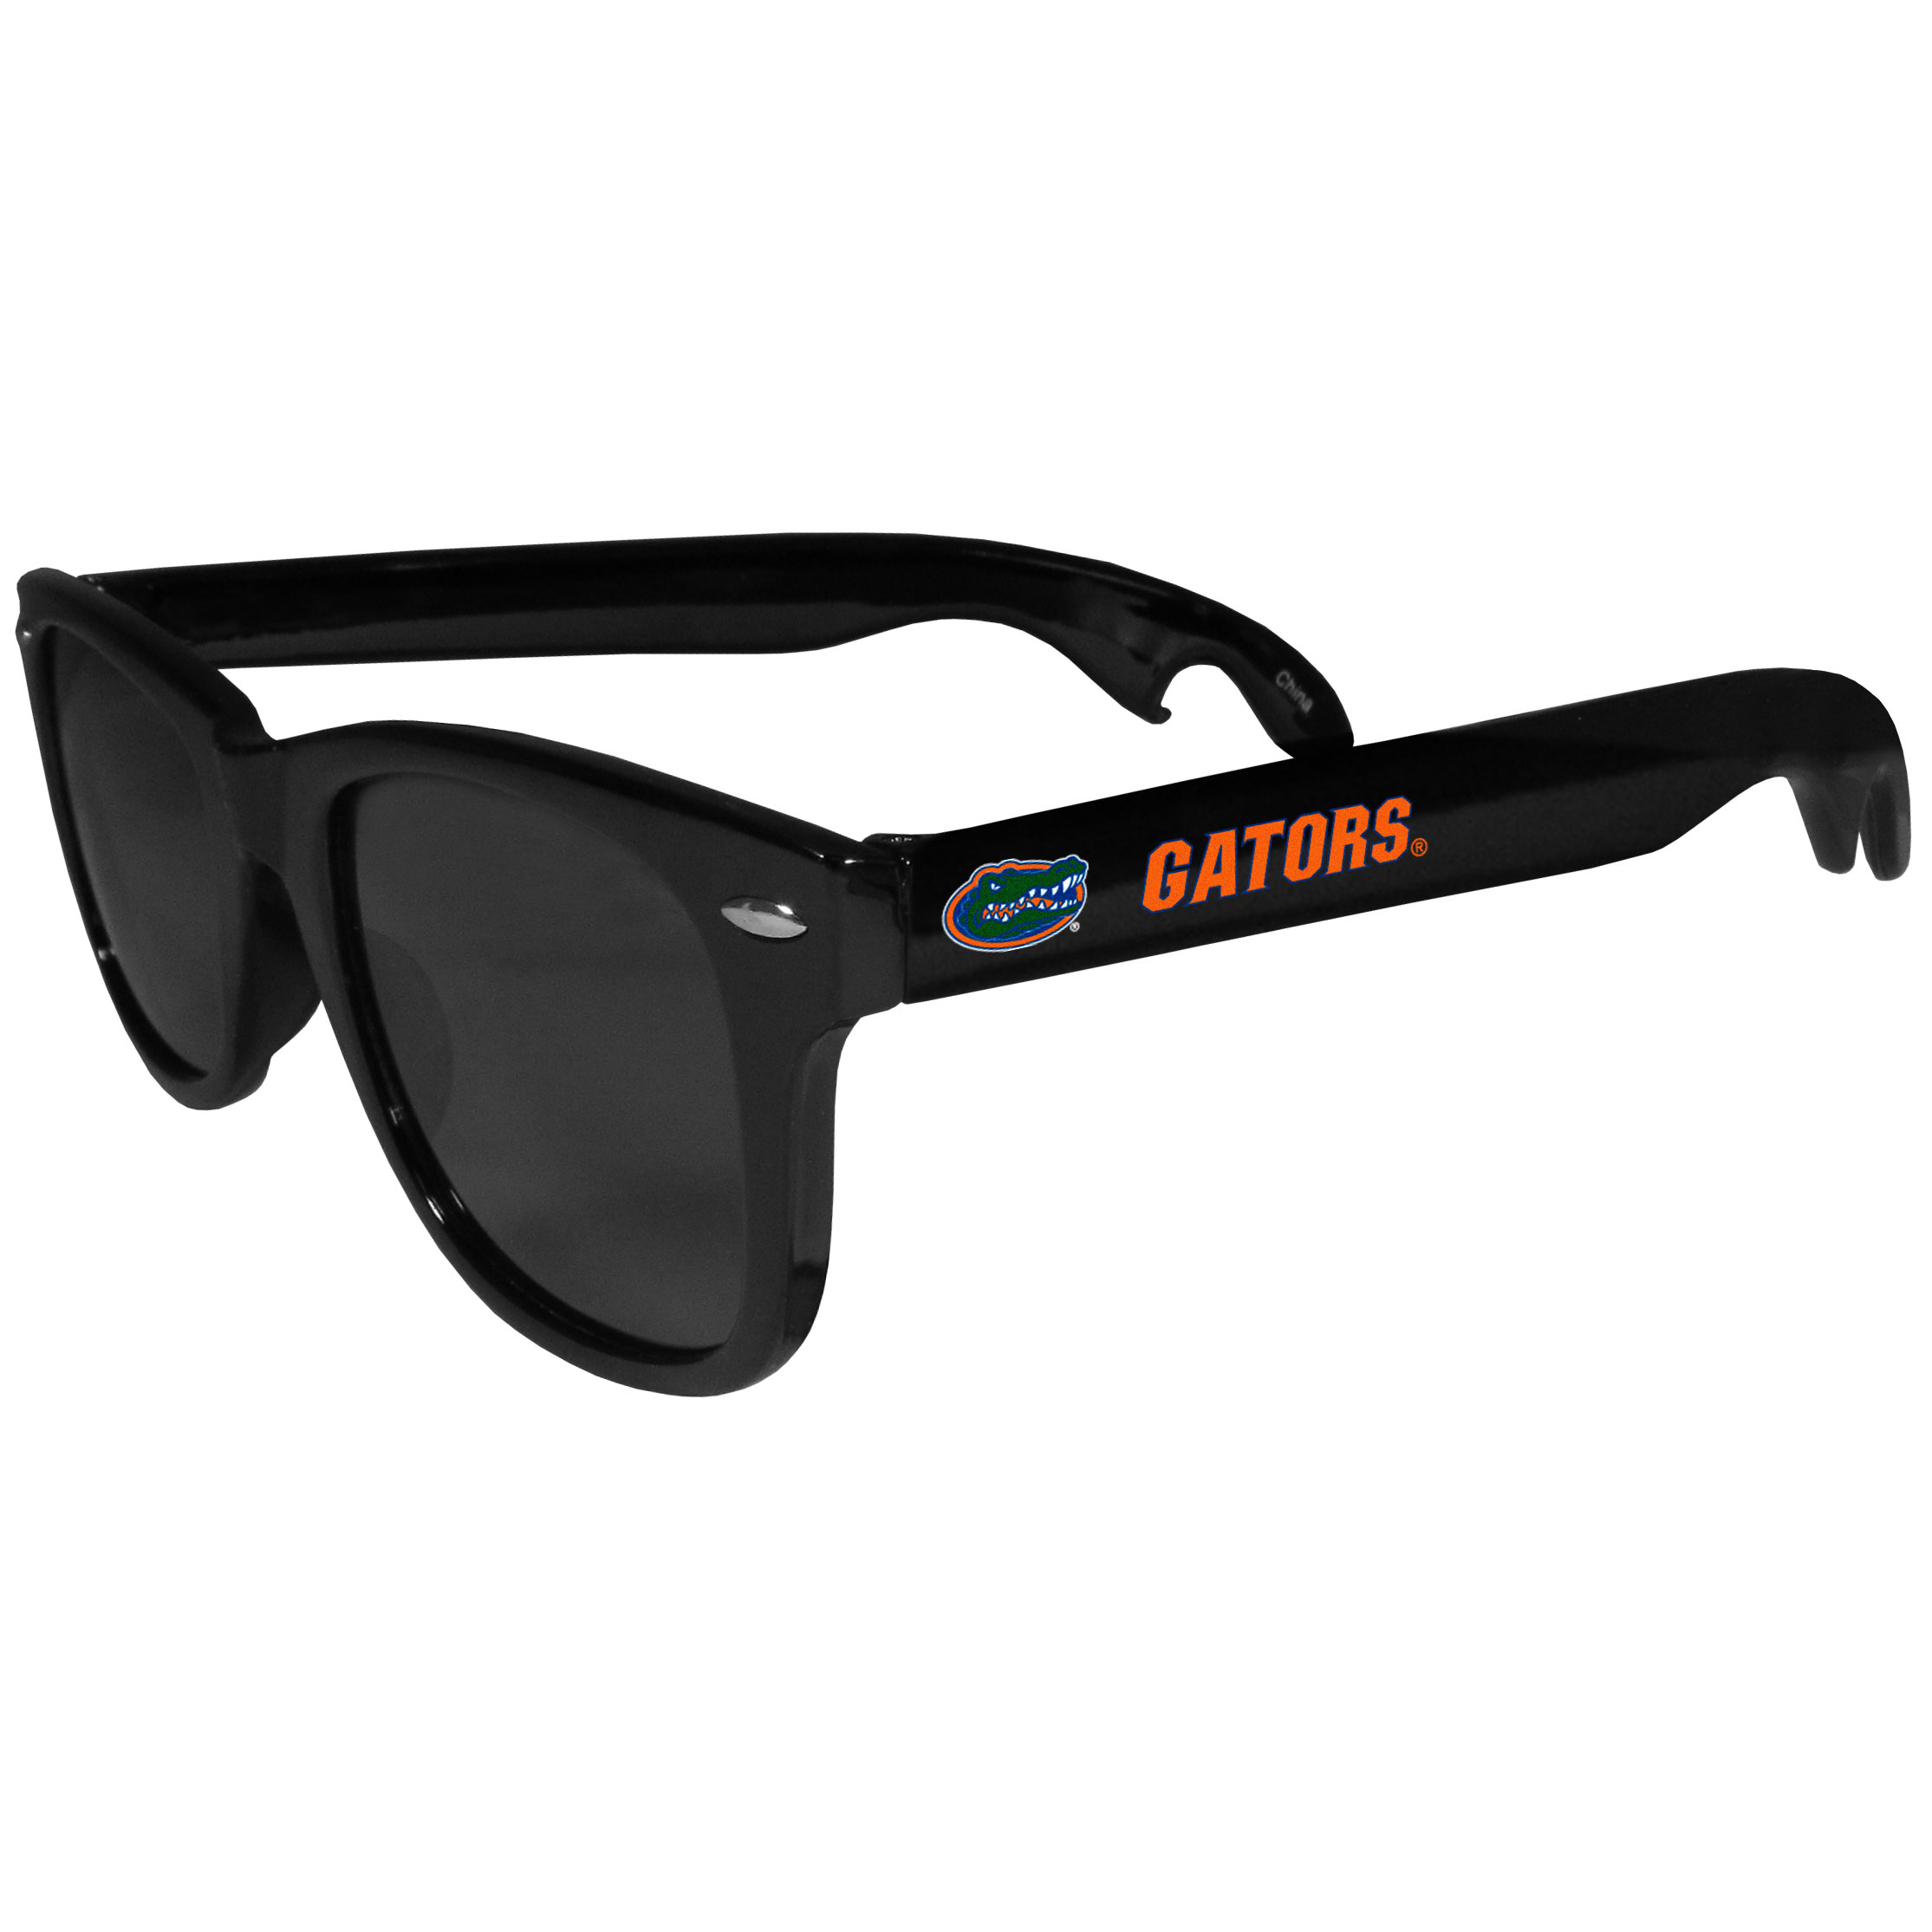 Florida Gators Beachfarer Bottle Opener Sunglasses - Seriously, these sunglasses open bottles! Keep the party going with these amazing Florida Gators bottle opener sunglasses. The stylish retro frames feature team designs on the arms and functional bottle openers on the end of the arms. Whether you are at the beach or having a backyard BBQ on game day, these shades will keep your eyes protected with 100% UVA/UVB protection and keep you hydrated with the handy bottle opener arms.